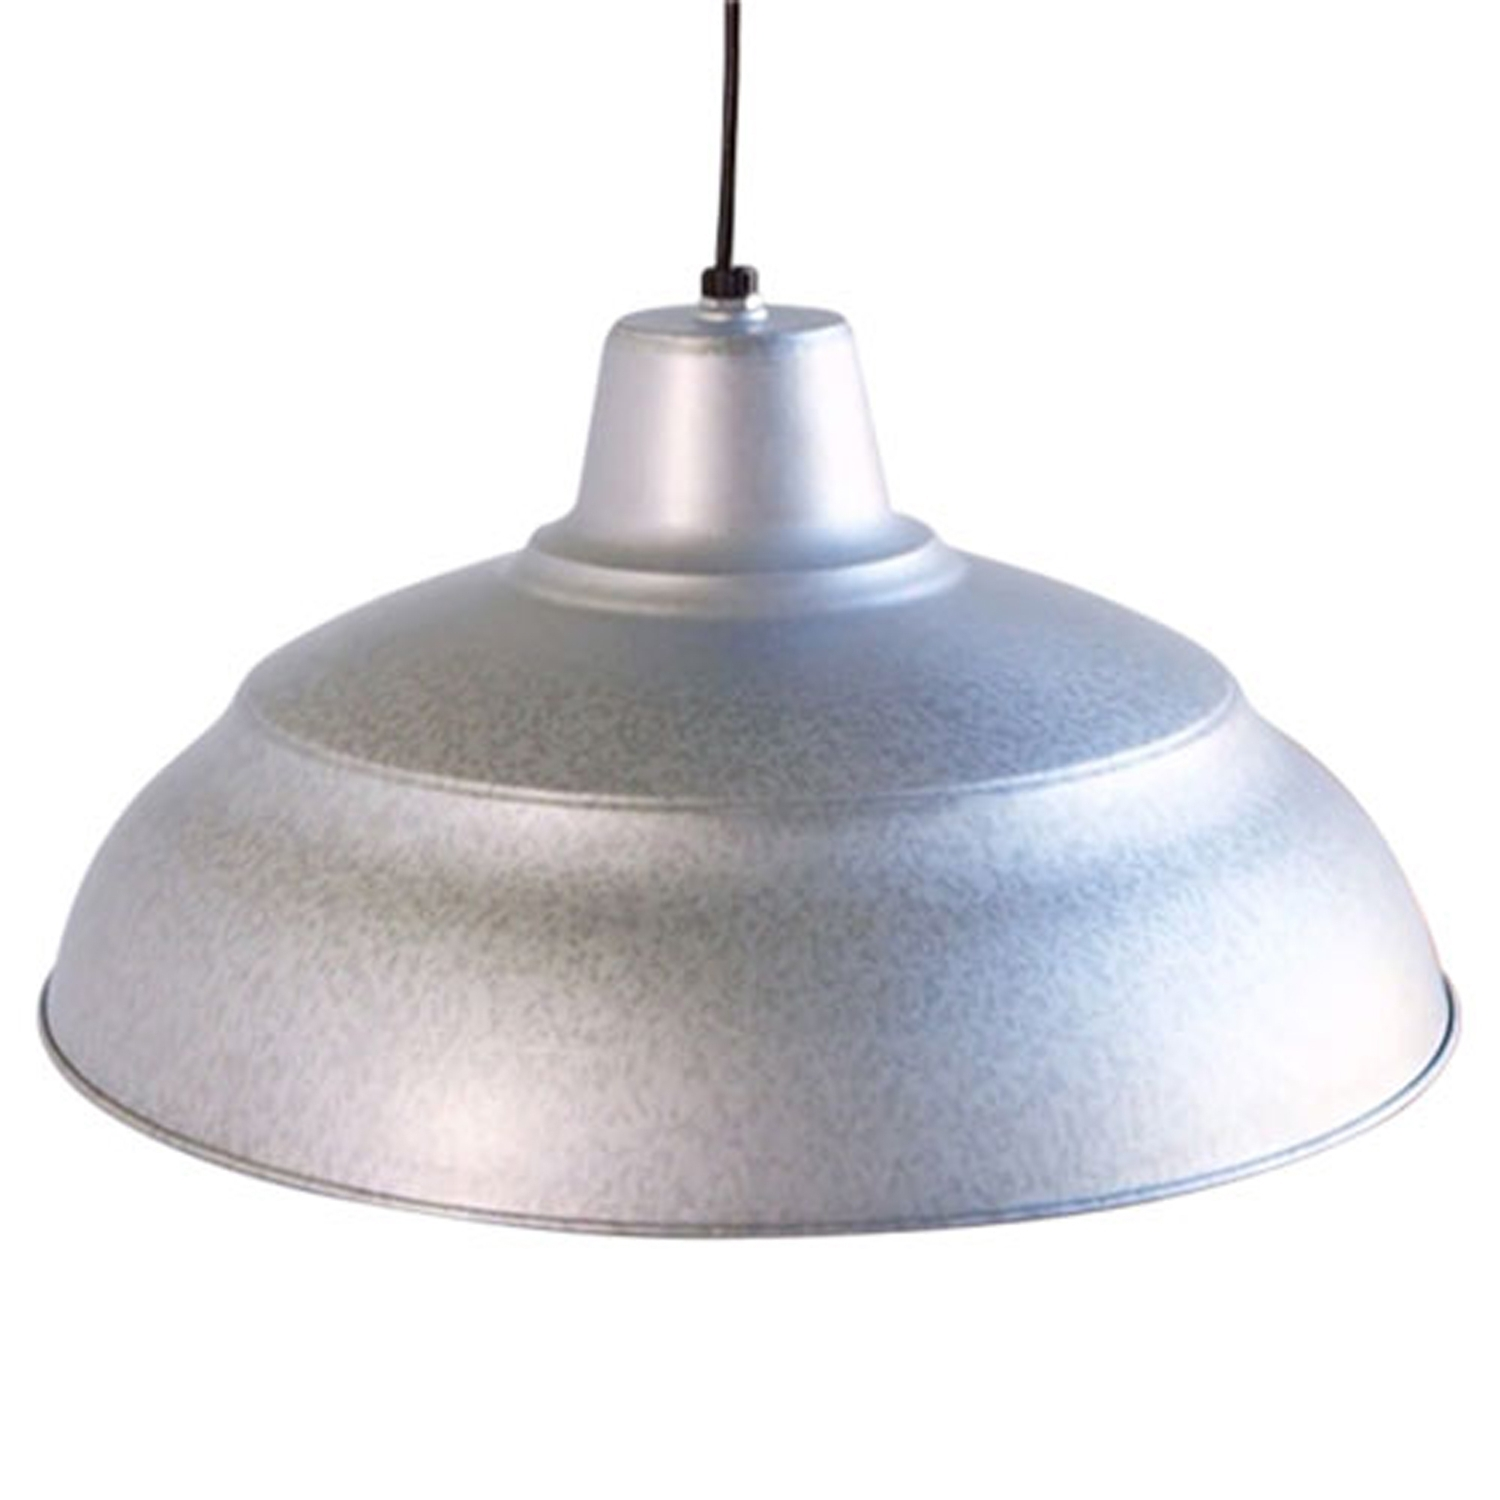 Galvanized Outdoor Ceiling Lights With Regard To Well Known R Series Galvanized 17 Inch Warehouse Cord Hung Outdoor Pendant (Gallery 1 of 20)